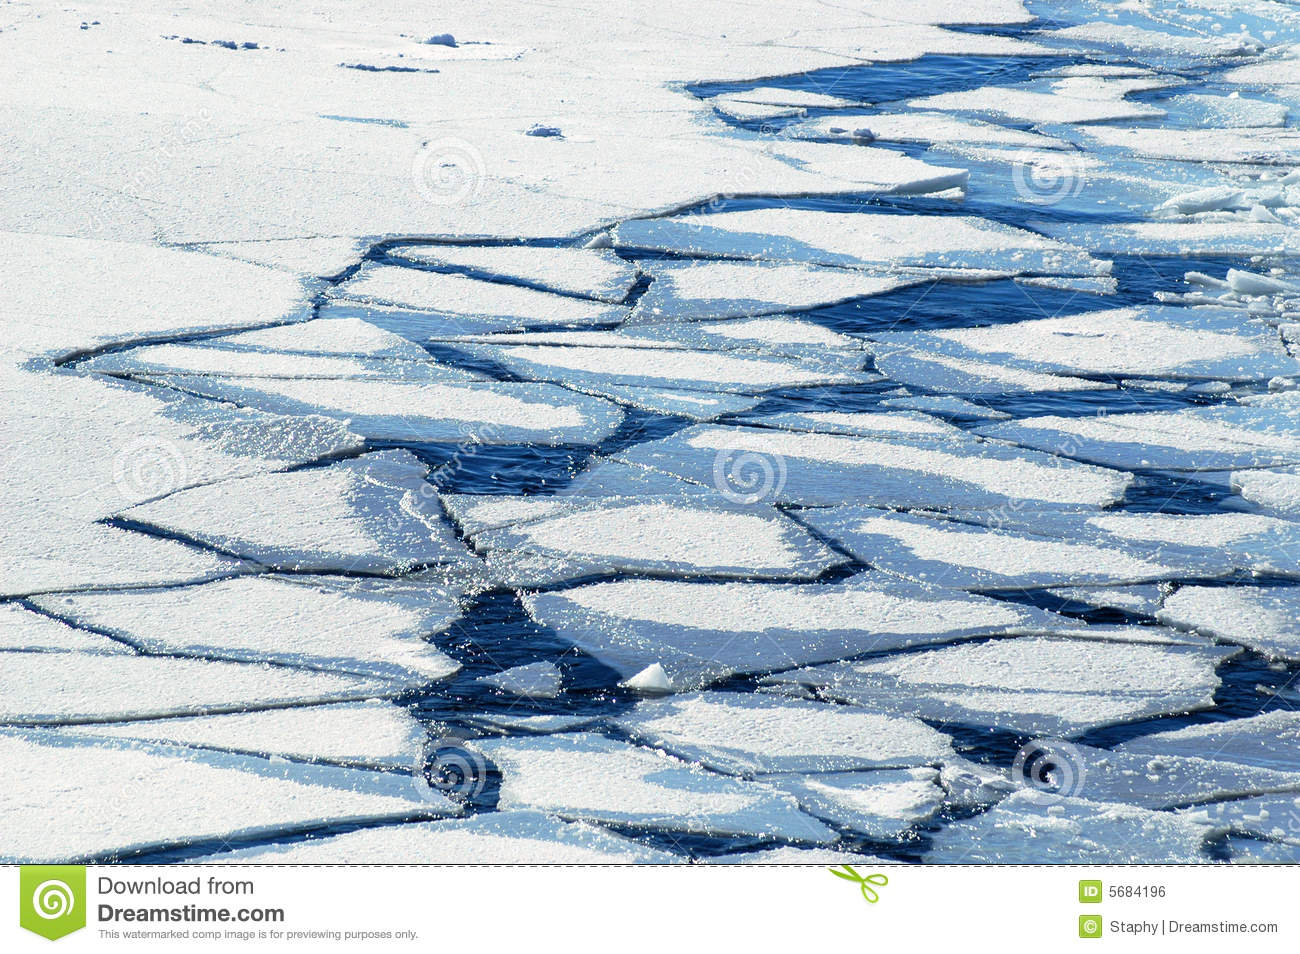 Crushed ice floes